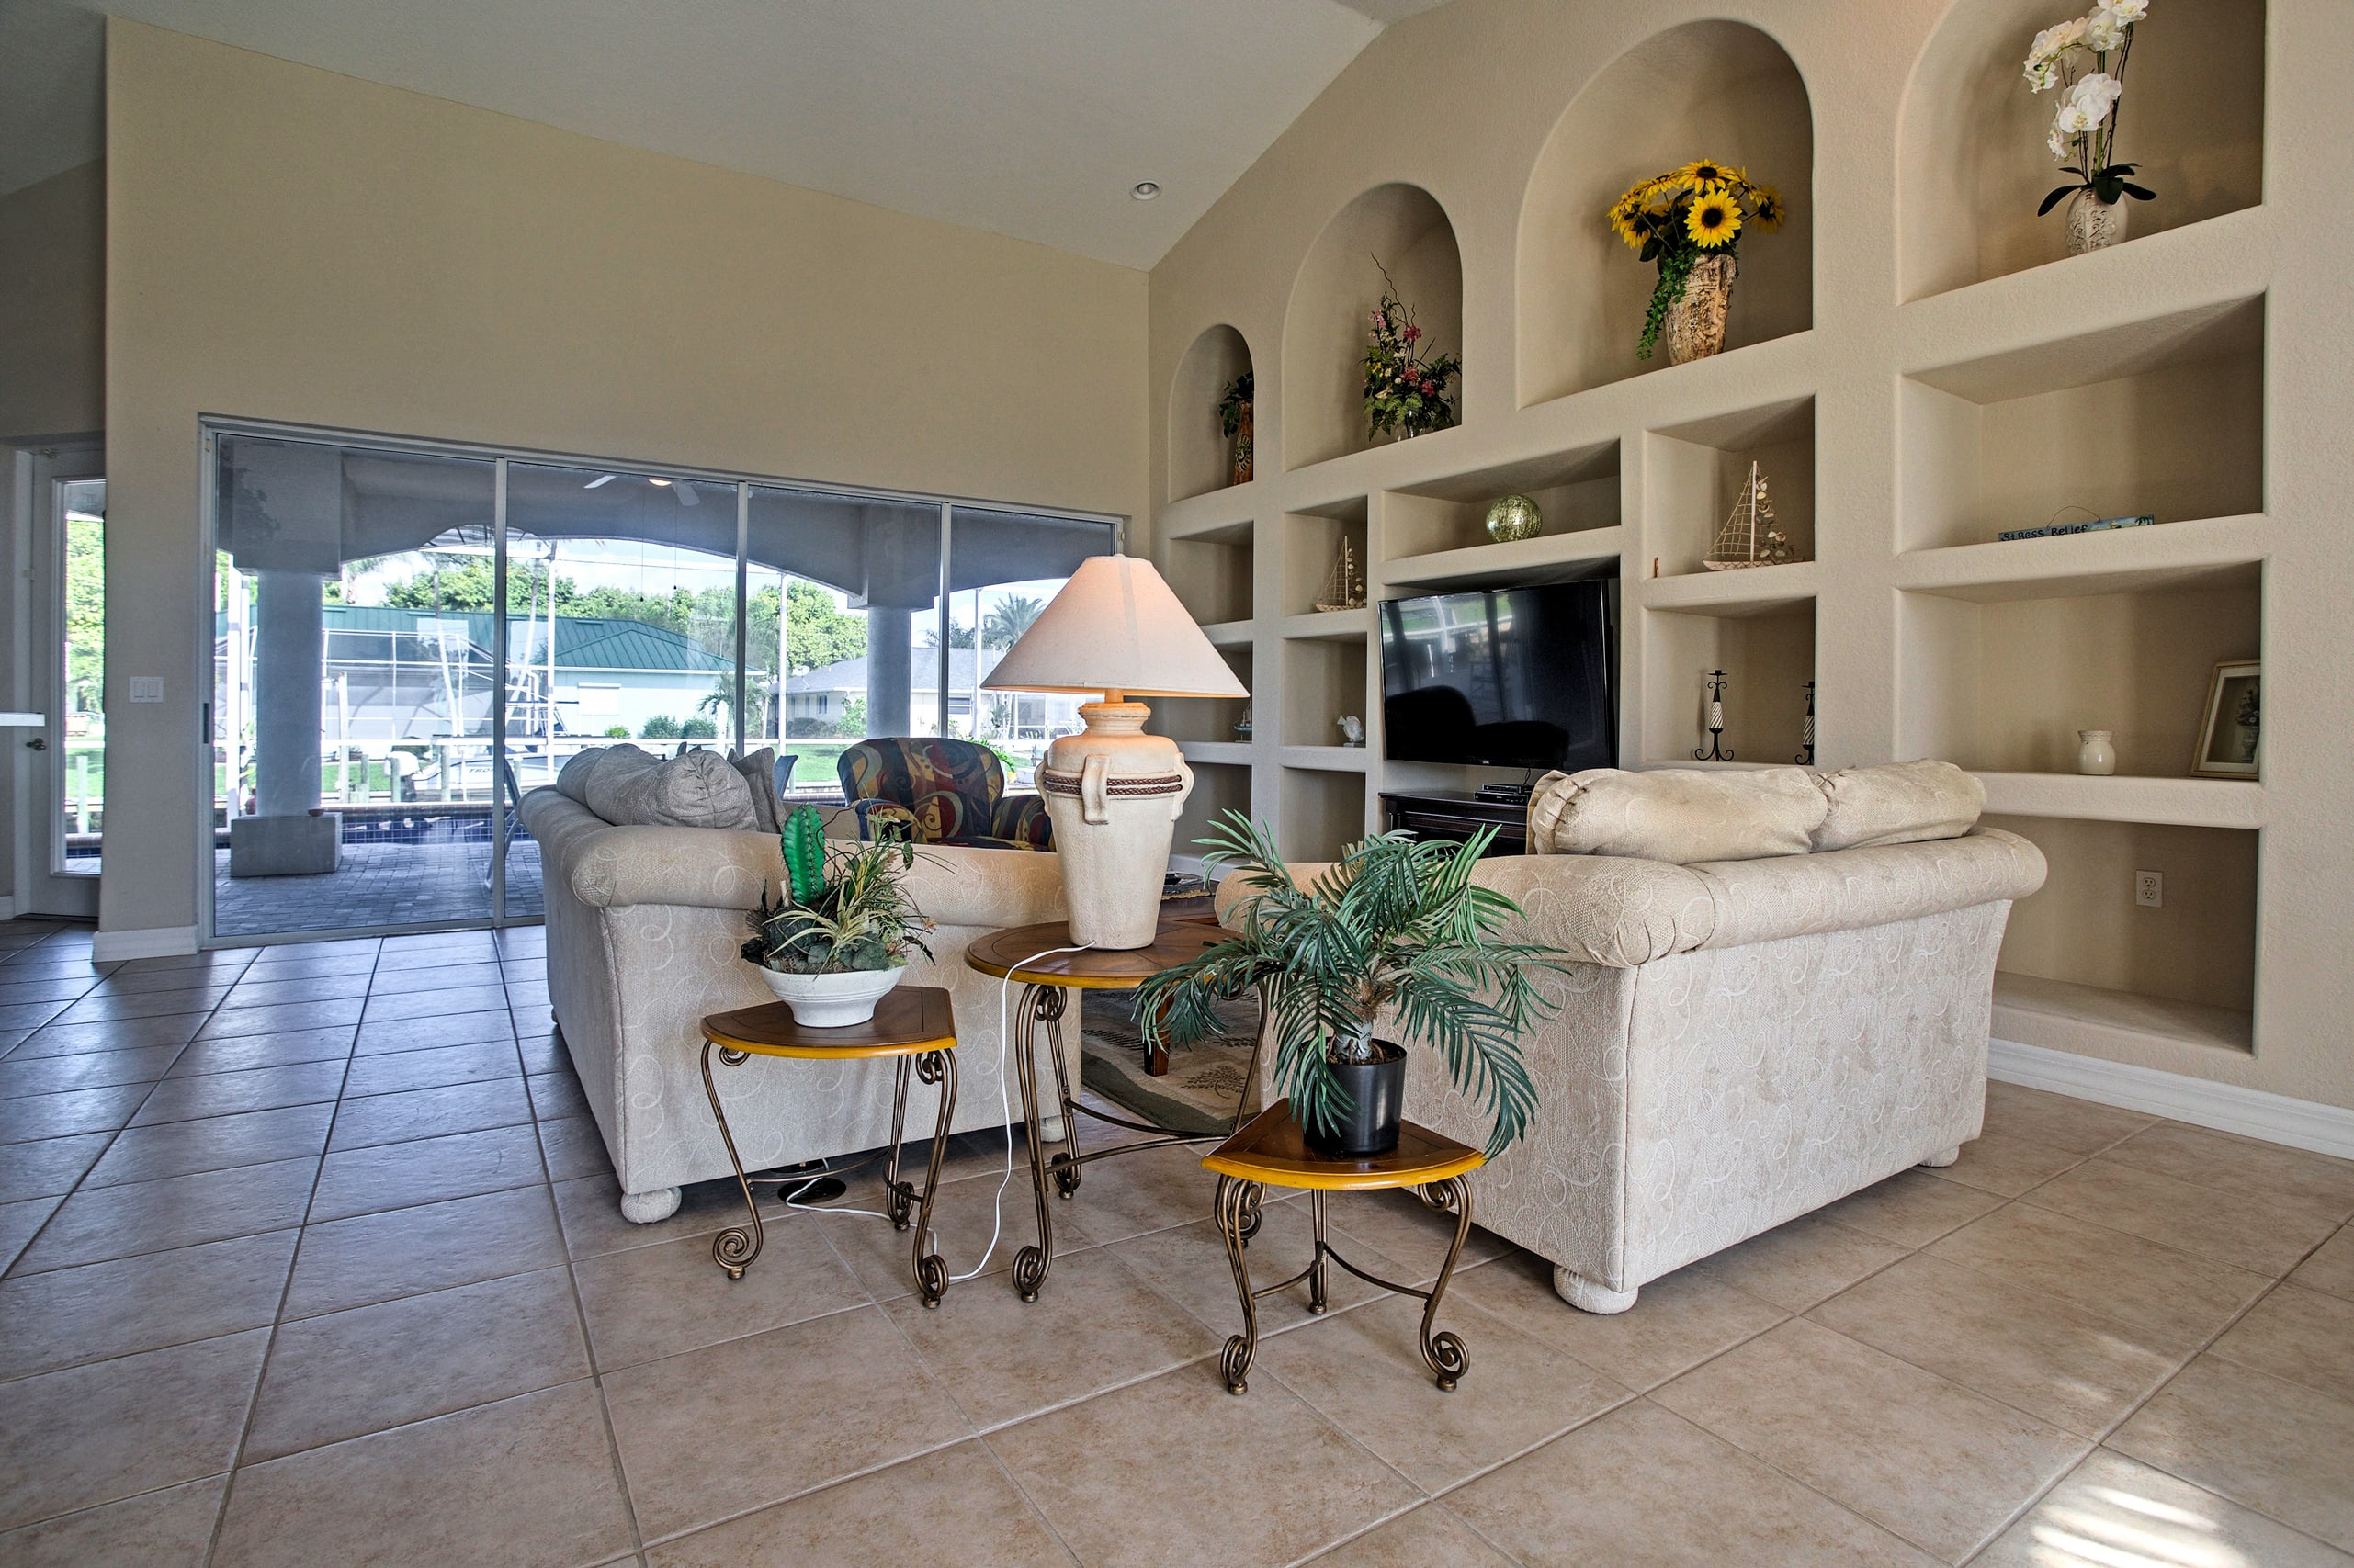 With an abundance of large windows, this home is bright and inviting.